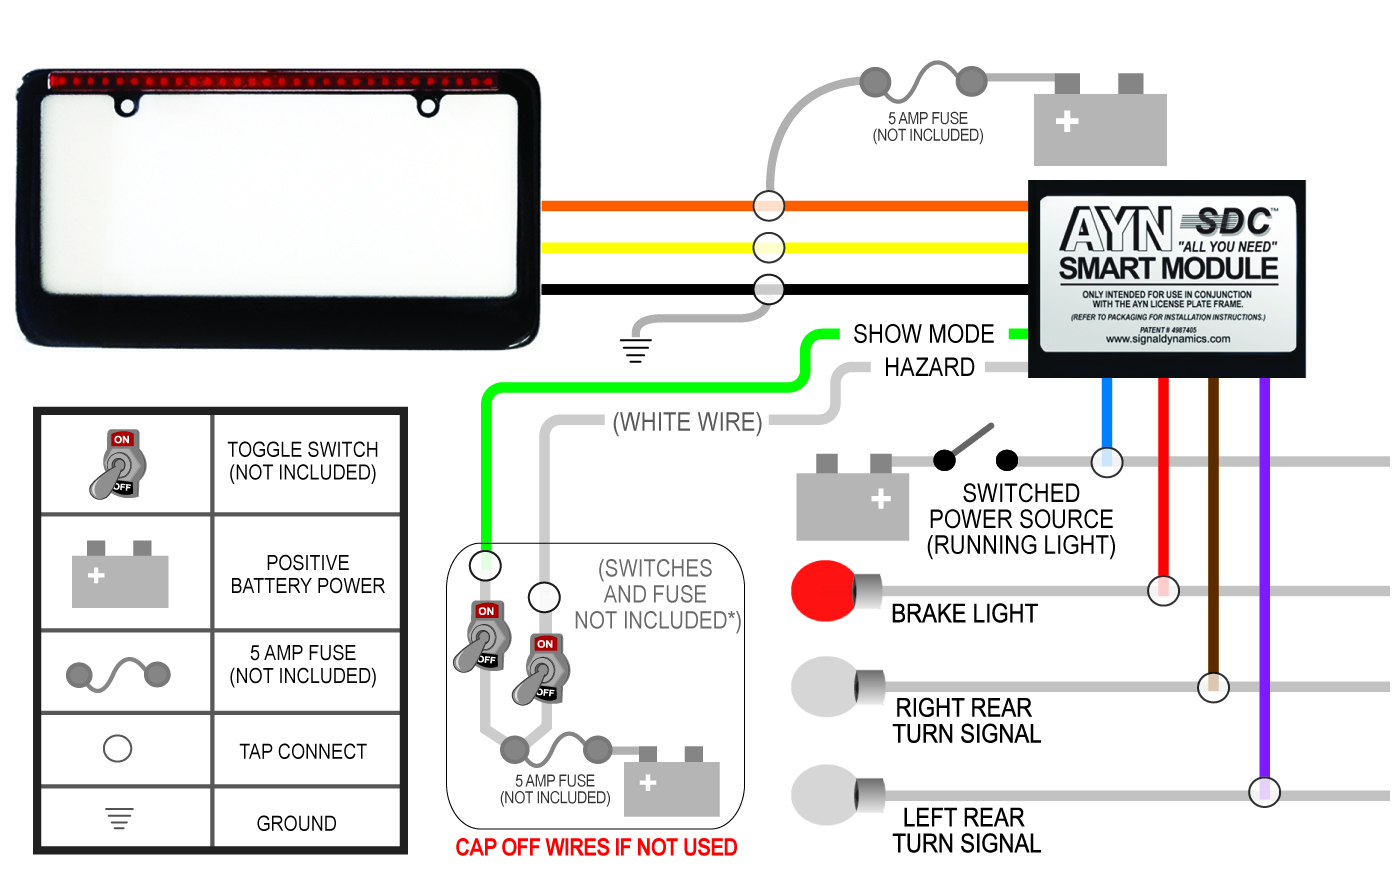 black auto wiring diagram?t=1399476781 black ayn automotive license plate frame & smart module combo Basic Turn Signal Wiring Diagram at arjmand.co